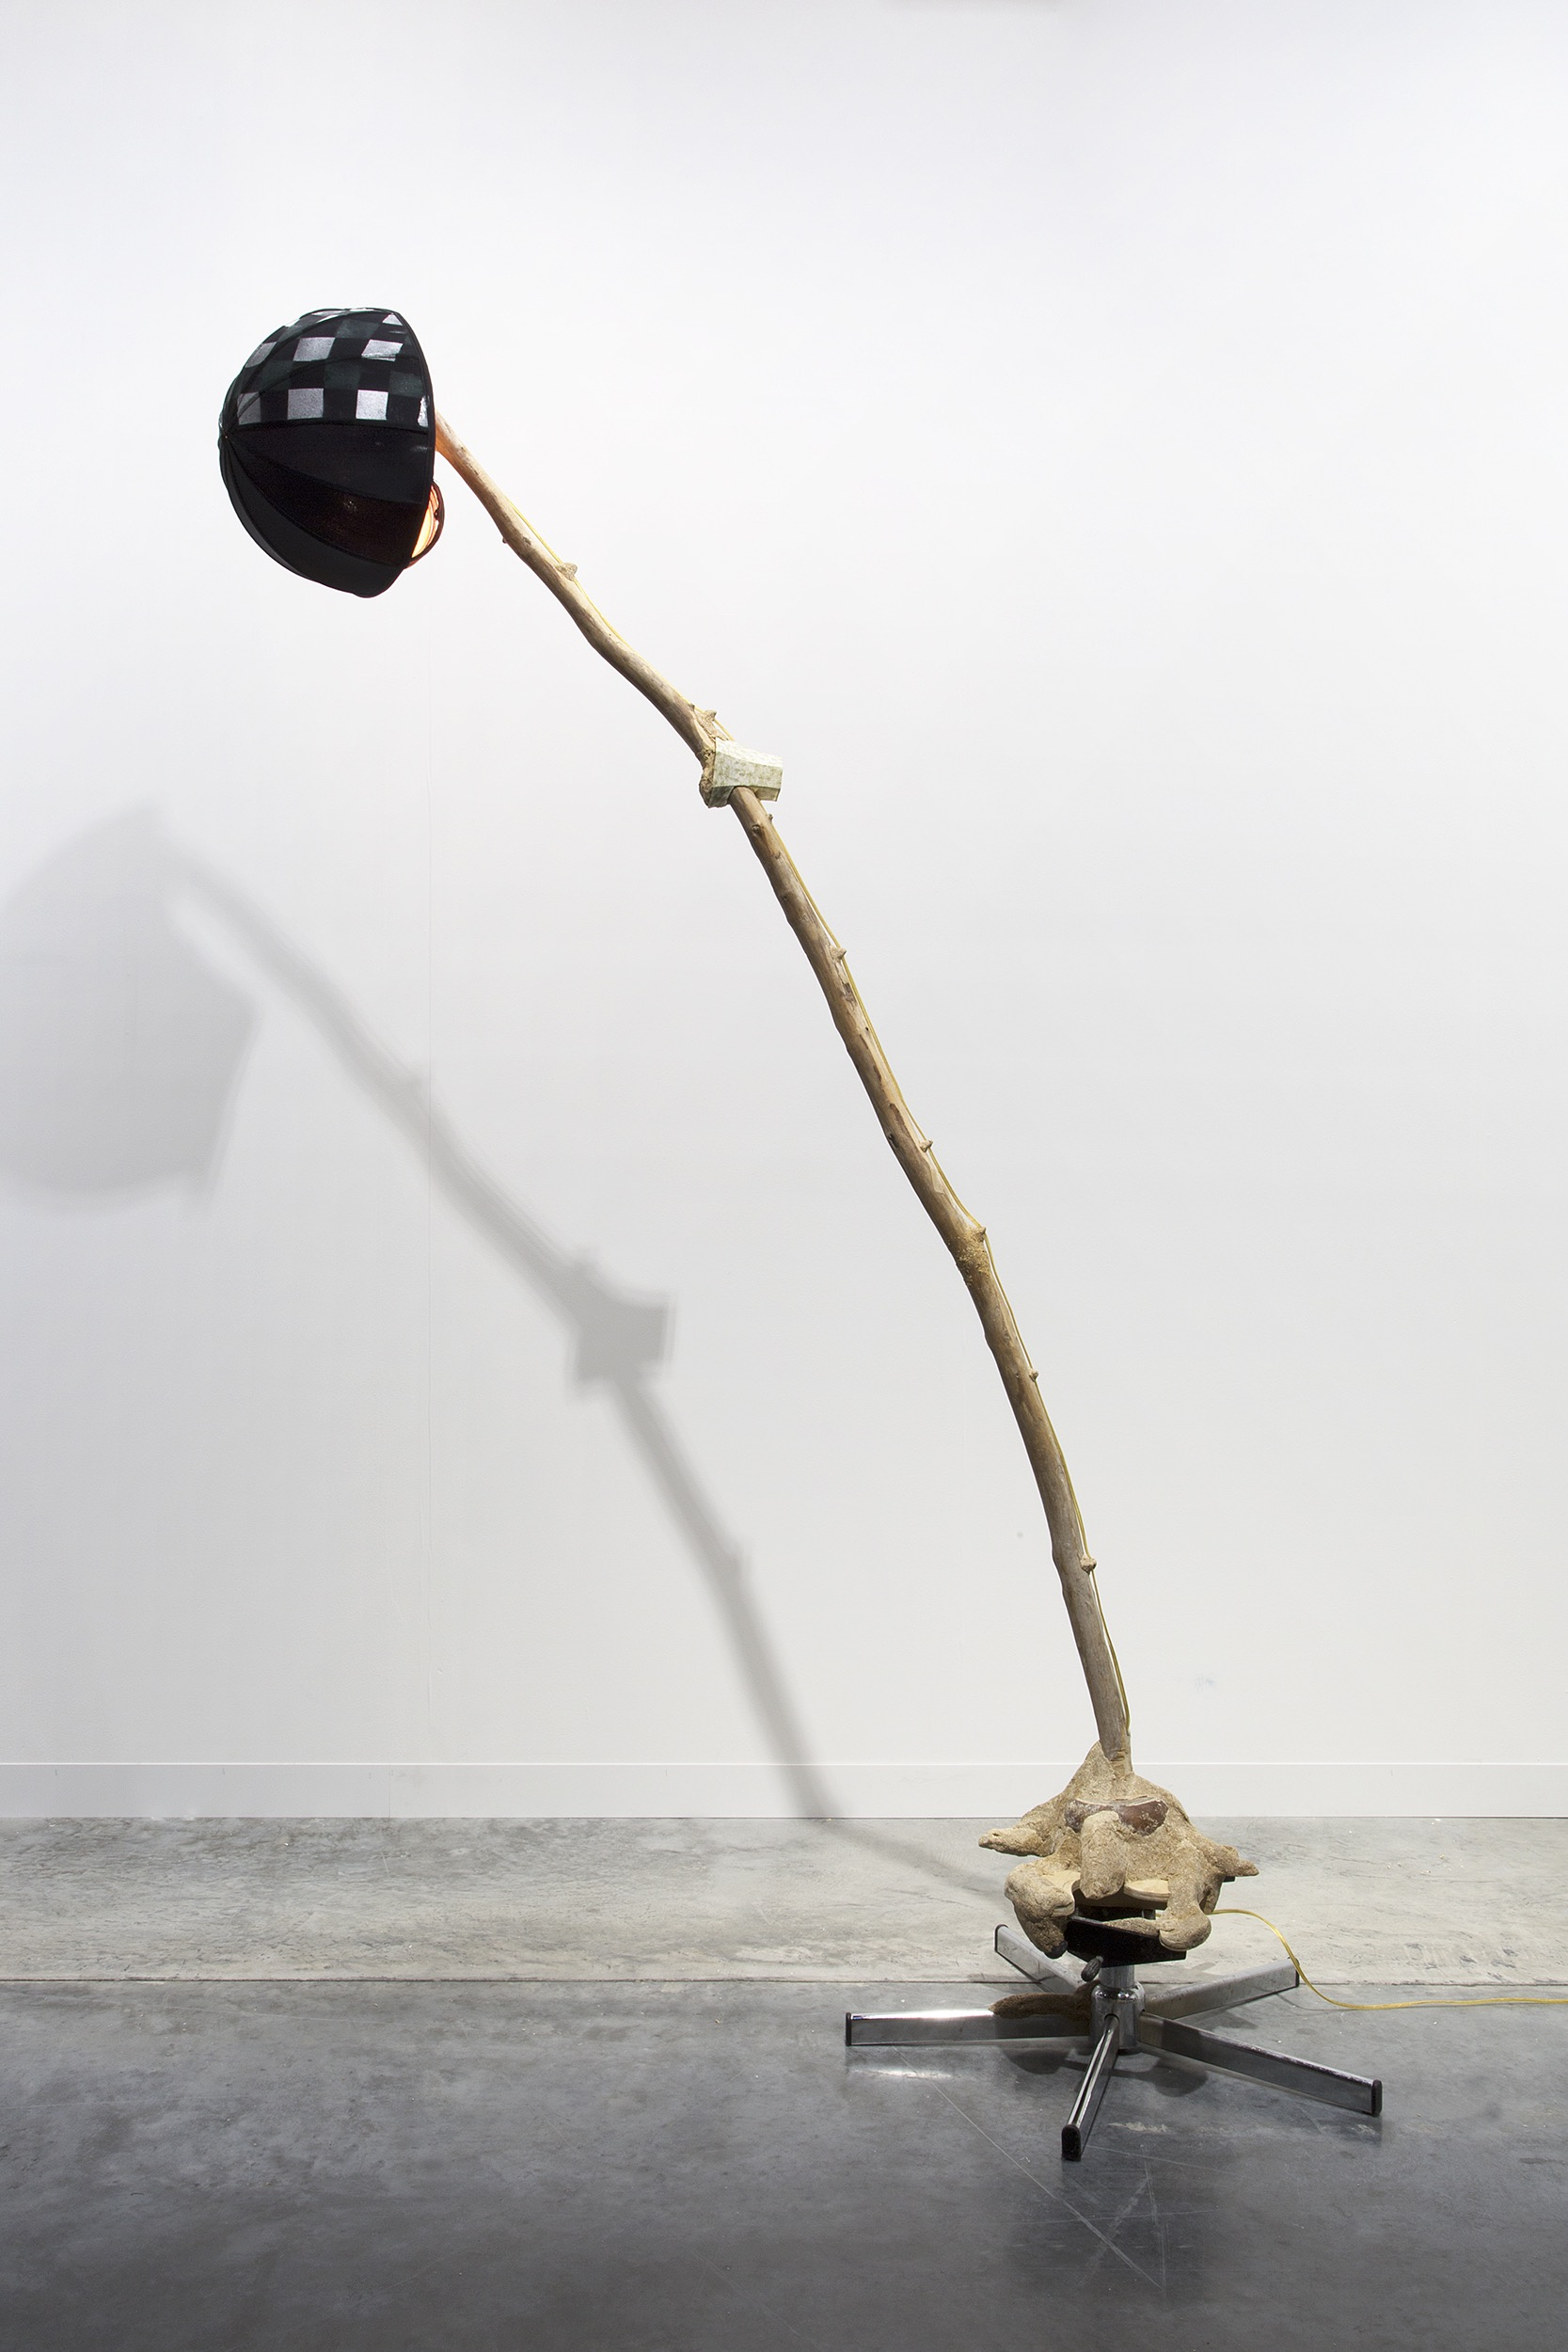 Worthless Lump Lamp  2017  Chair base, bun foot, plywood, sawdust, wood glue, driftwood, lamp wiring and lamp shade (steel and silk)  228.6 x 101.6 x 55.8 cm / 90 x 40 x 22 in